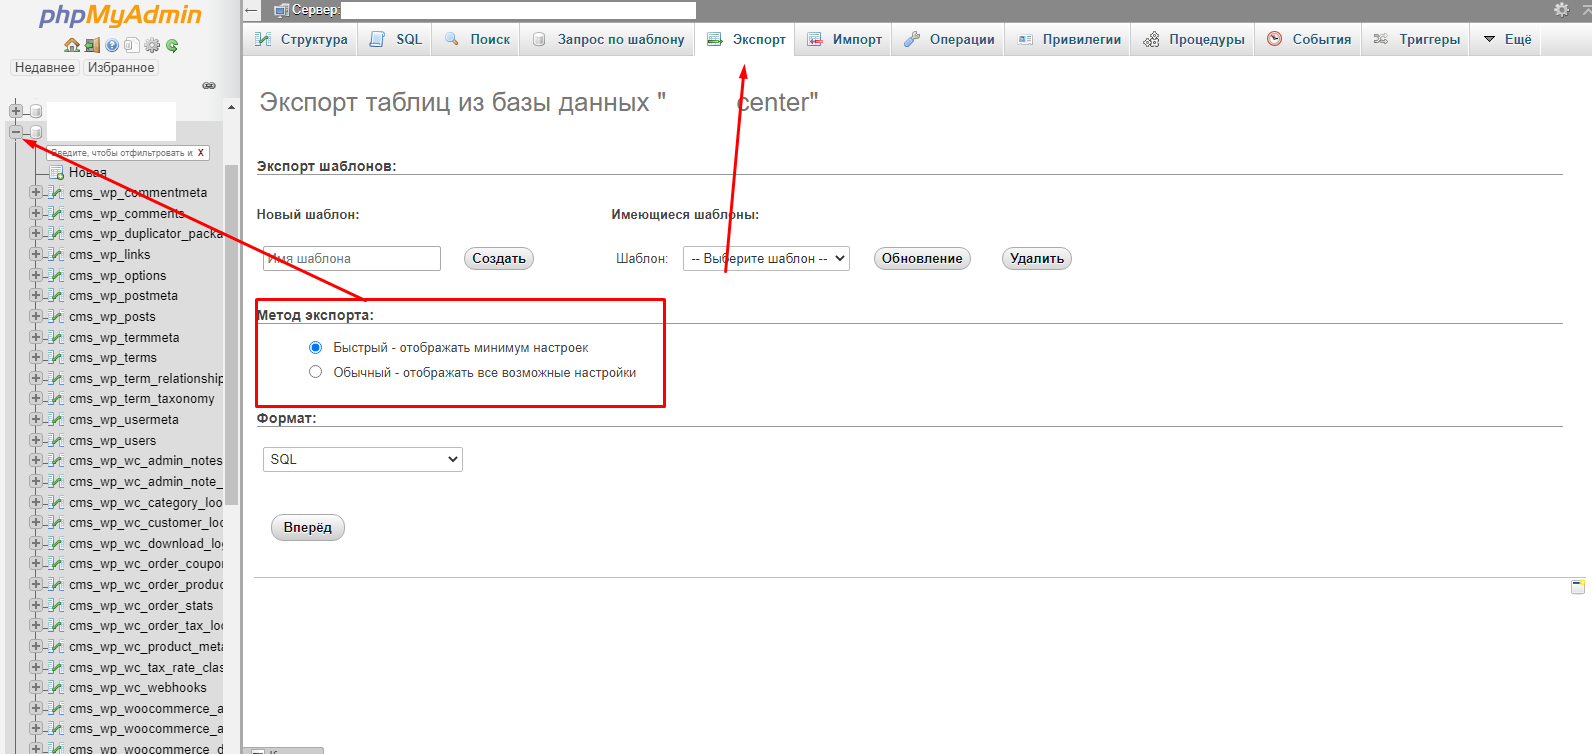 Example of export to PhpMyAdmin